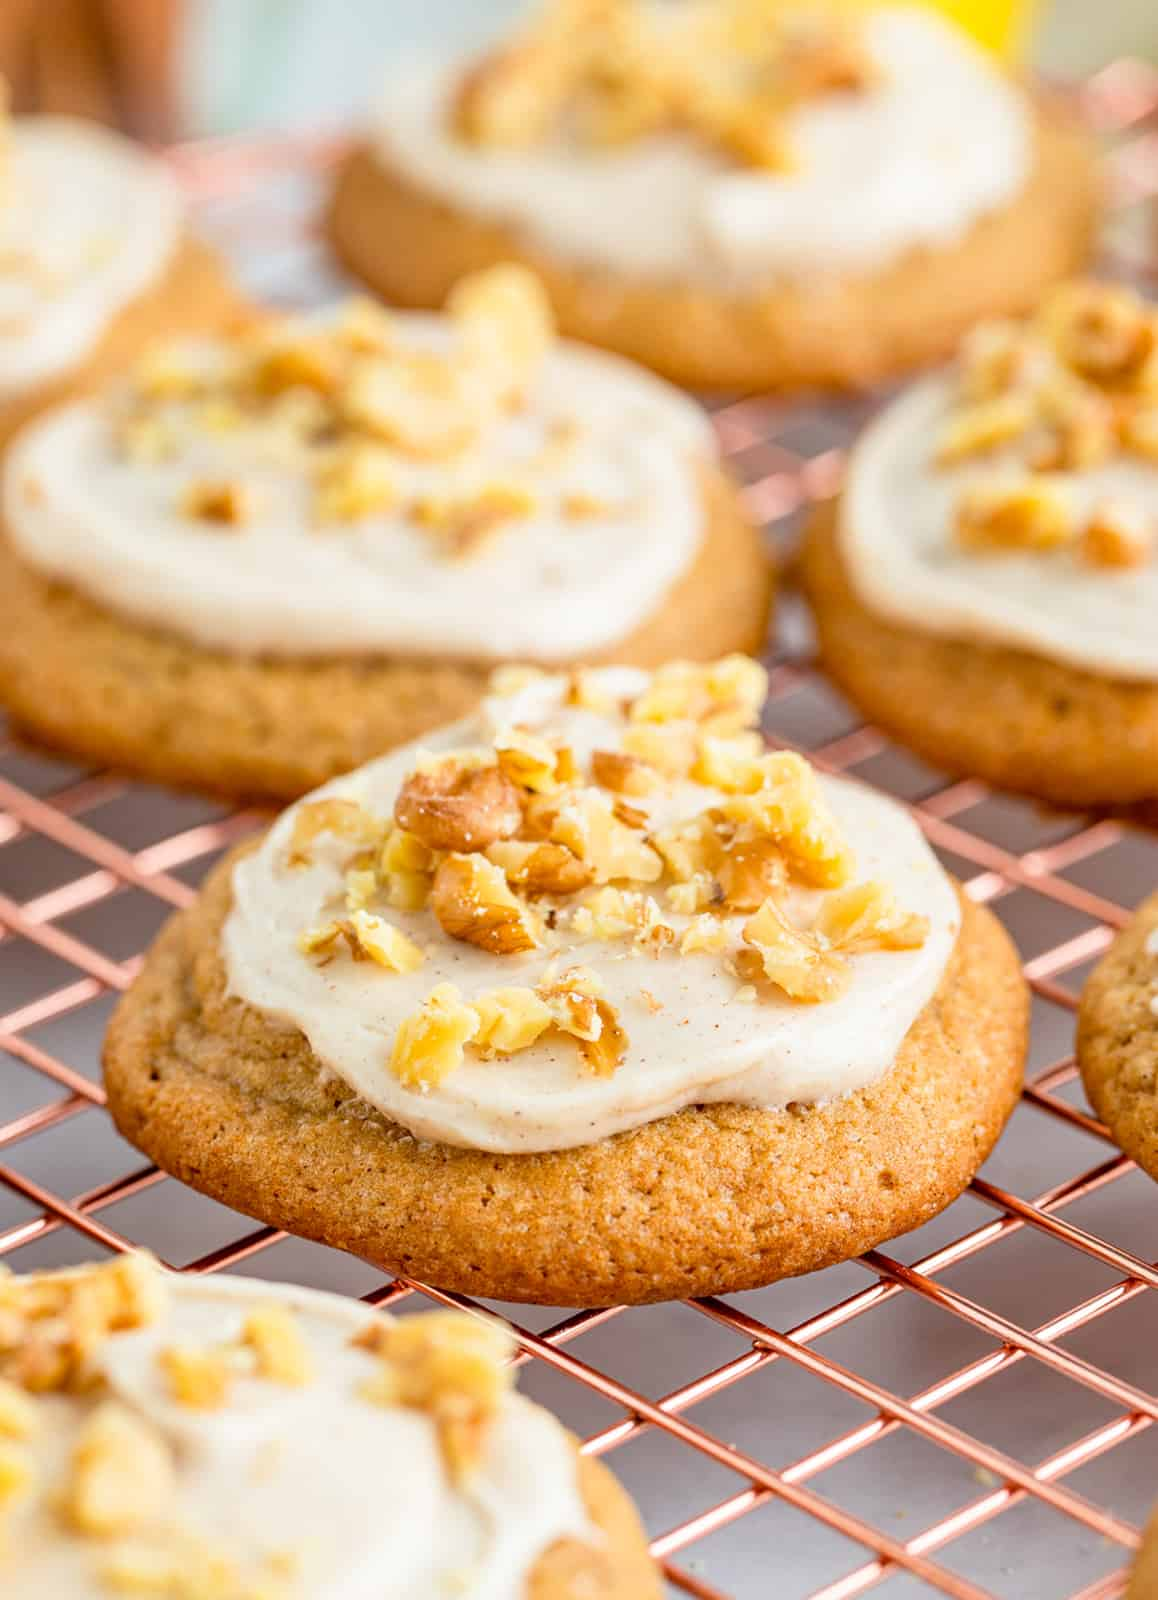 Banana Cookies on wire rack with frosting and nuts